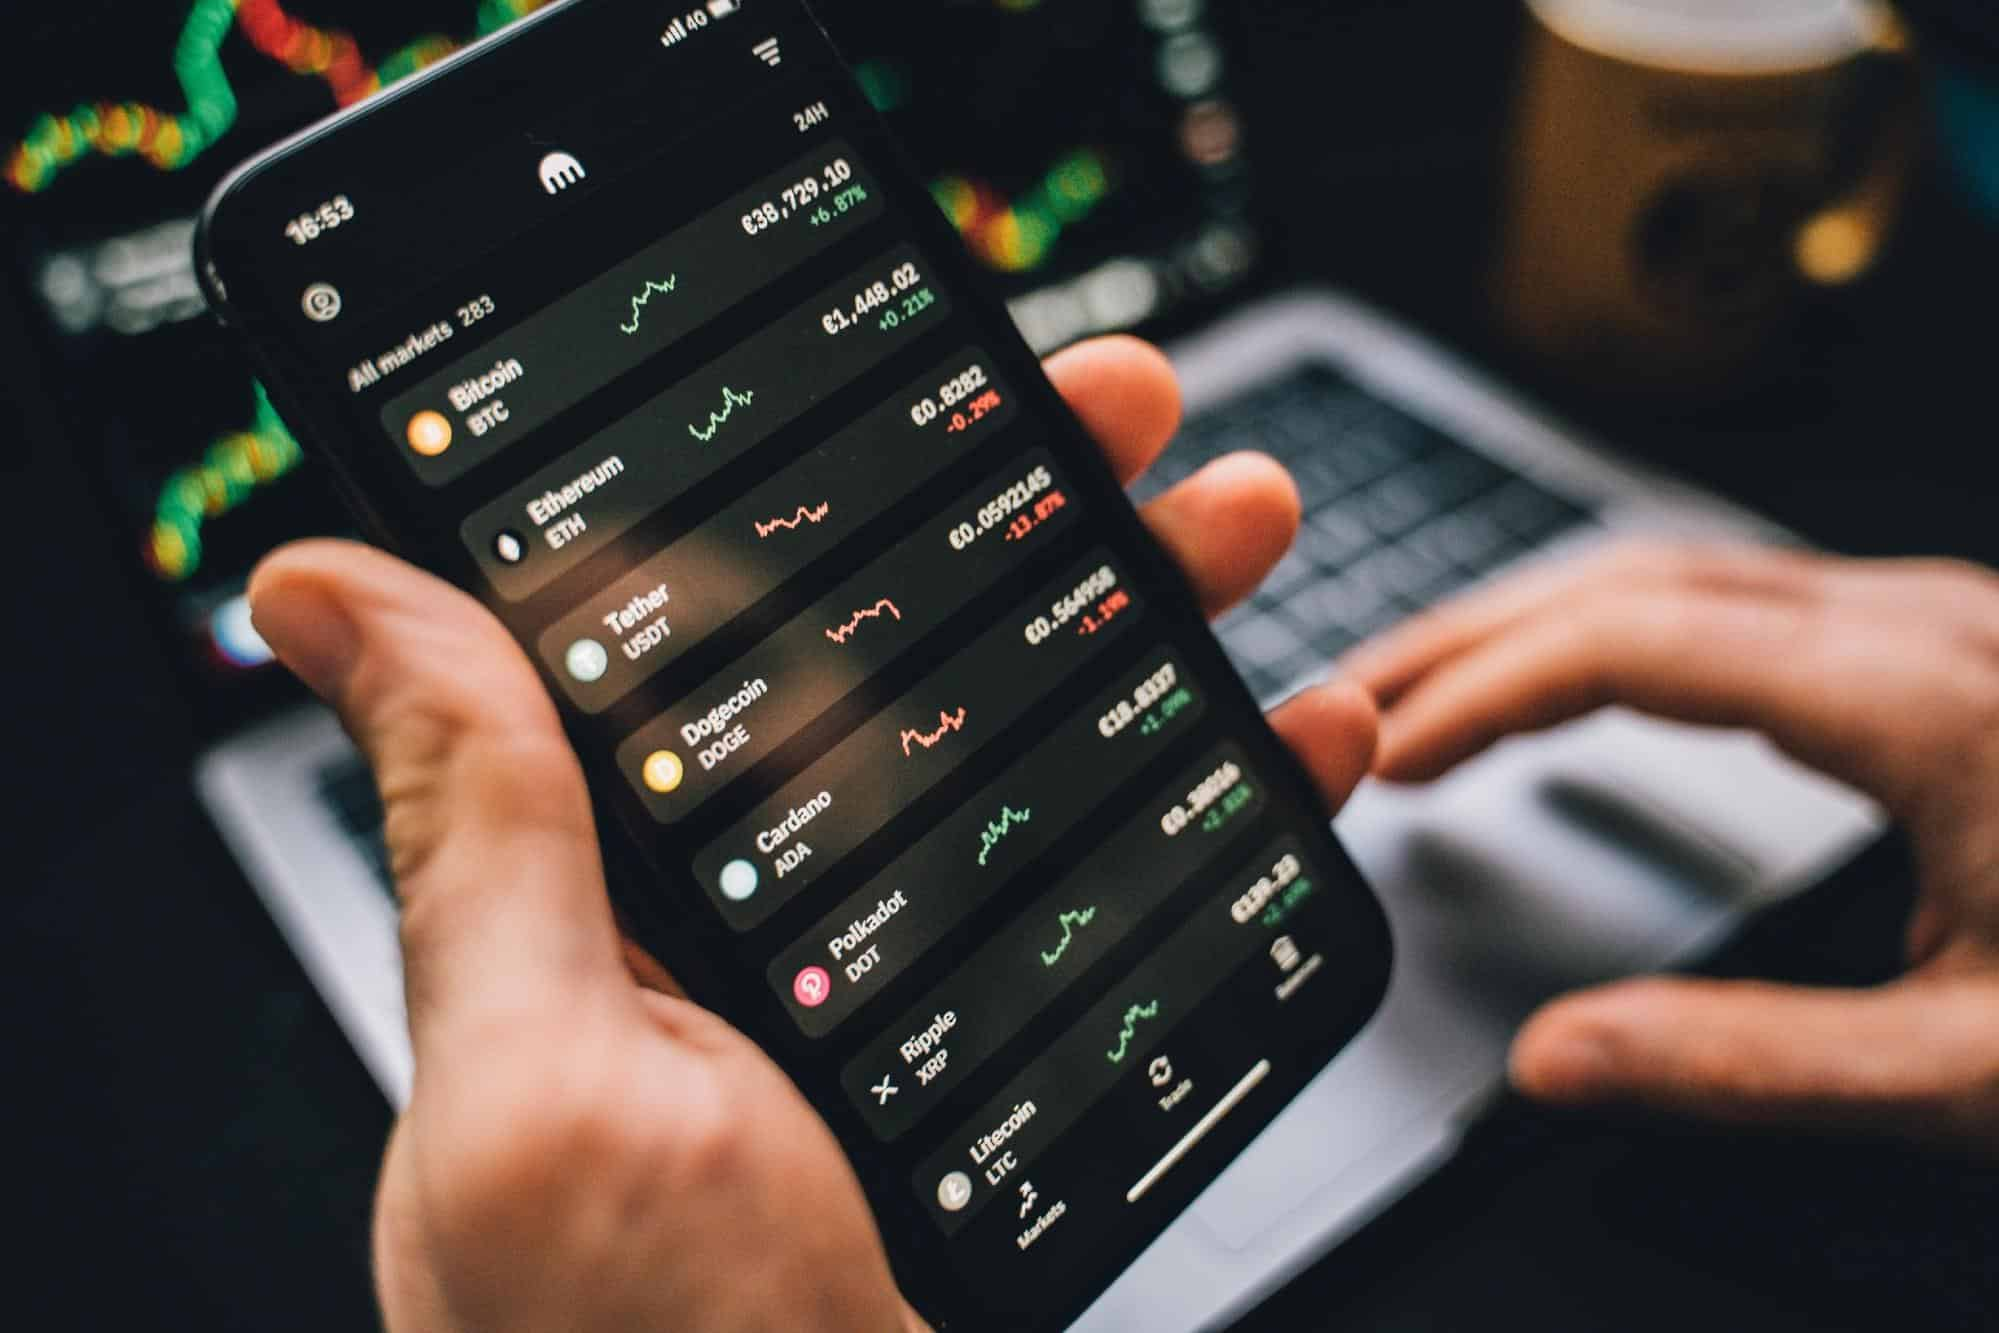 Best Bitcoin Mining Apps For Mobile Platforms